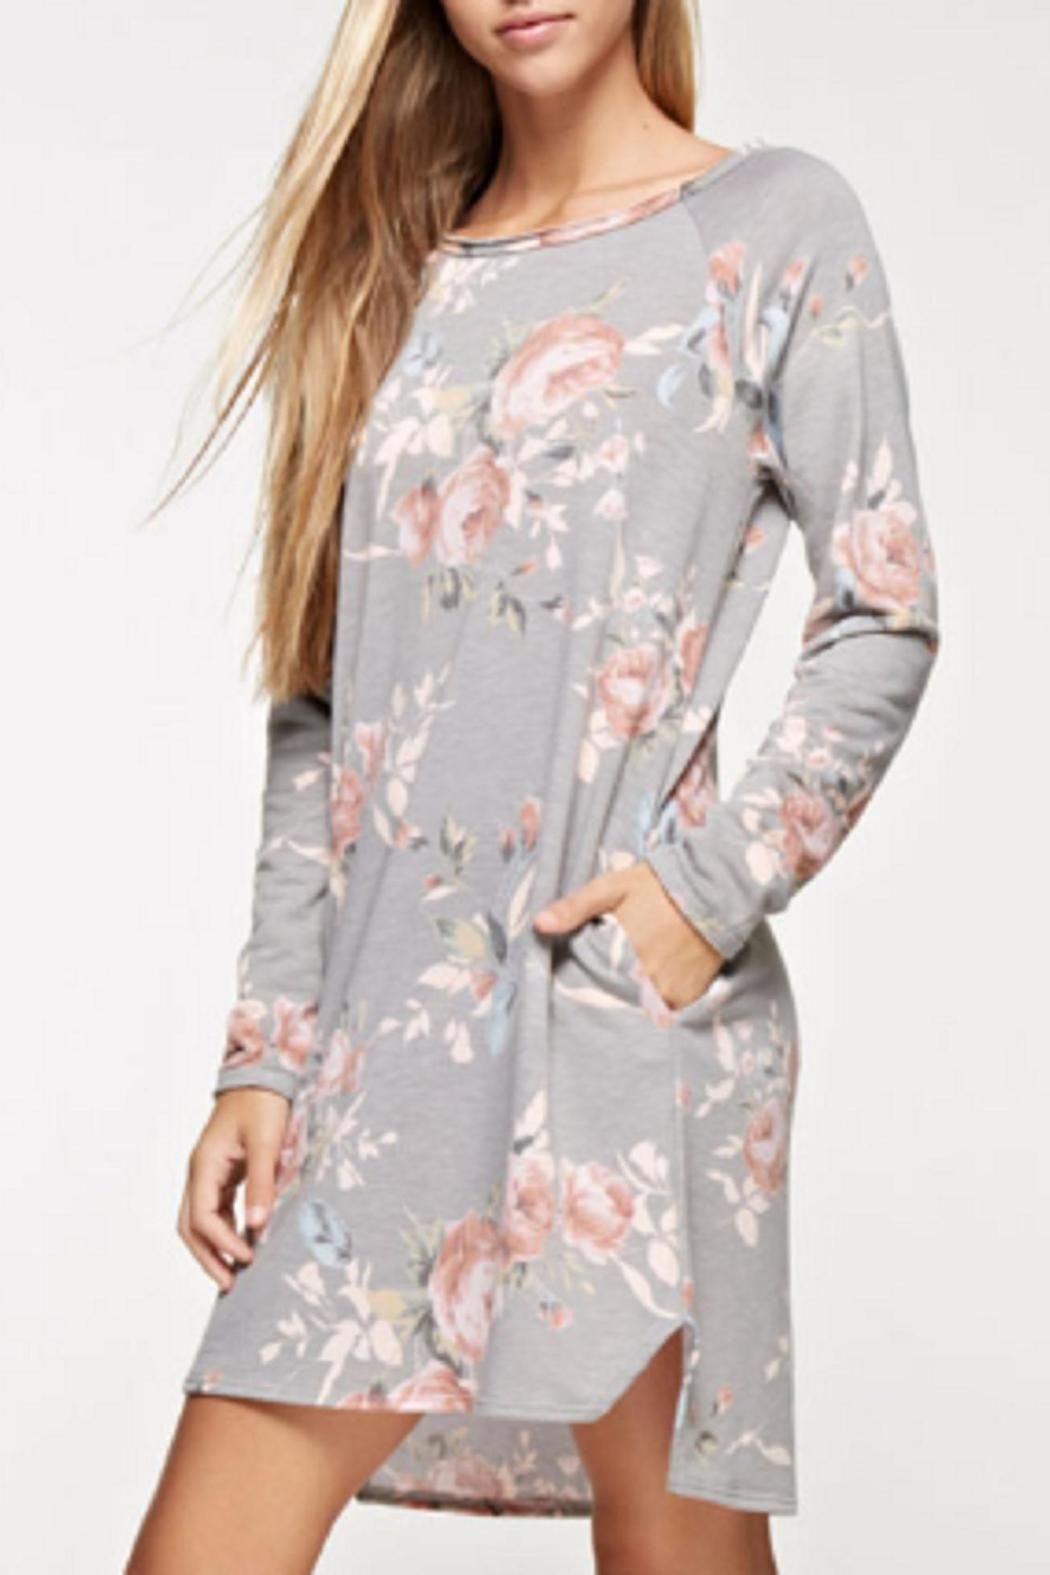 ceac0a8c81c Ever so cozy ever so cute grey long sleeve floral dress with pockets. Grey Floral  Dress by 12pm by Mon Ami. Clothing - Dresses Kansas